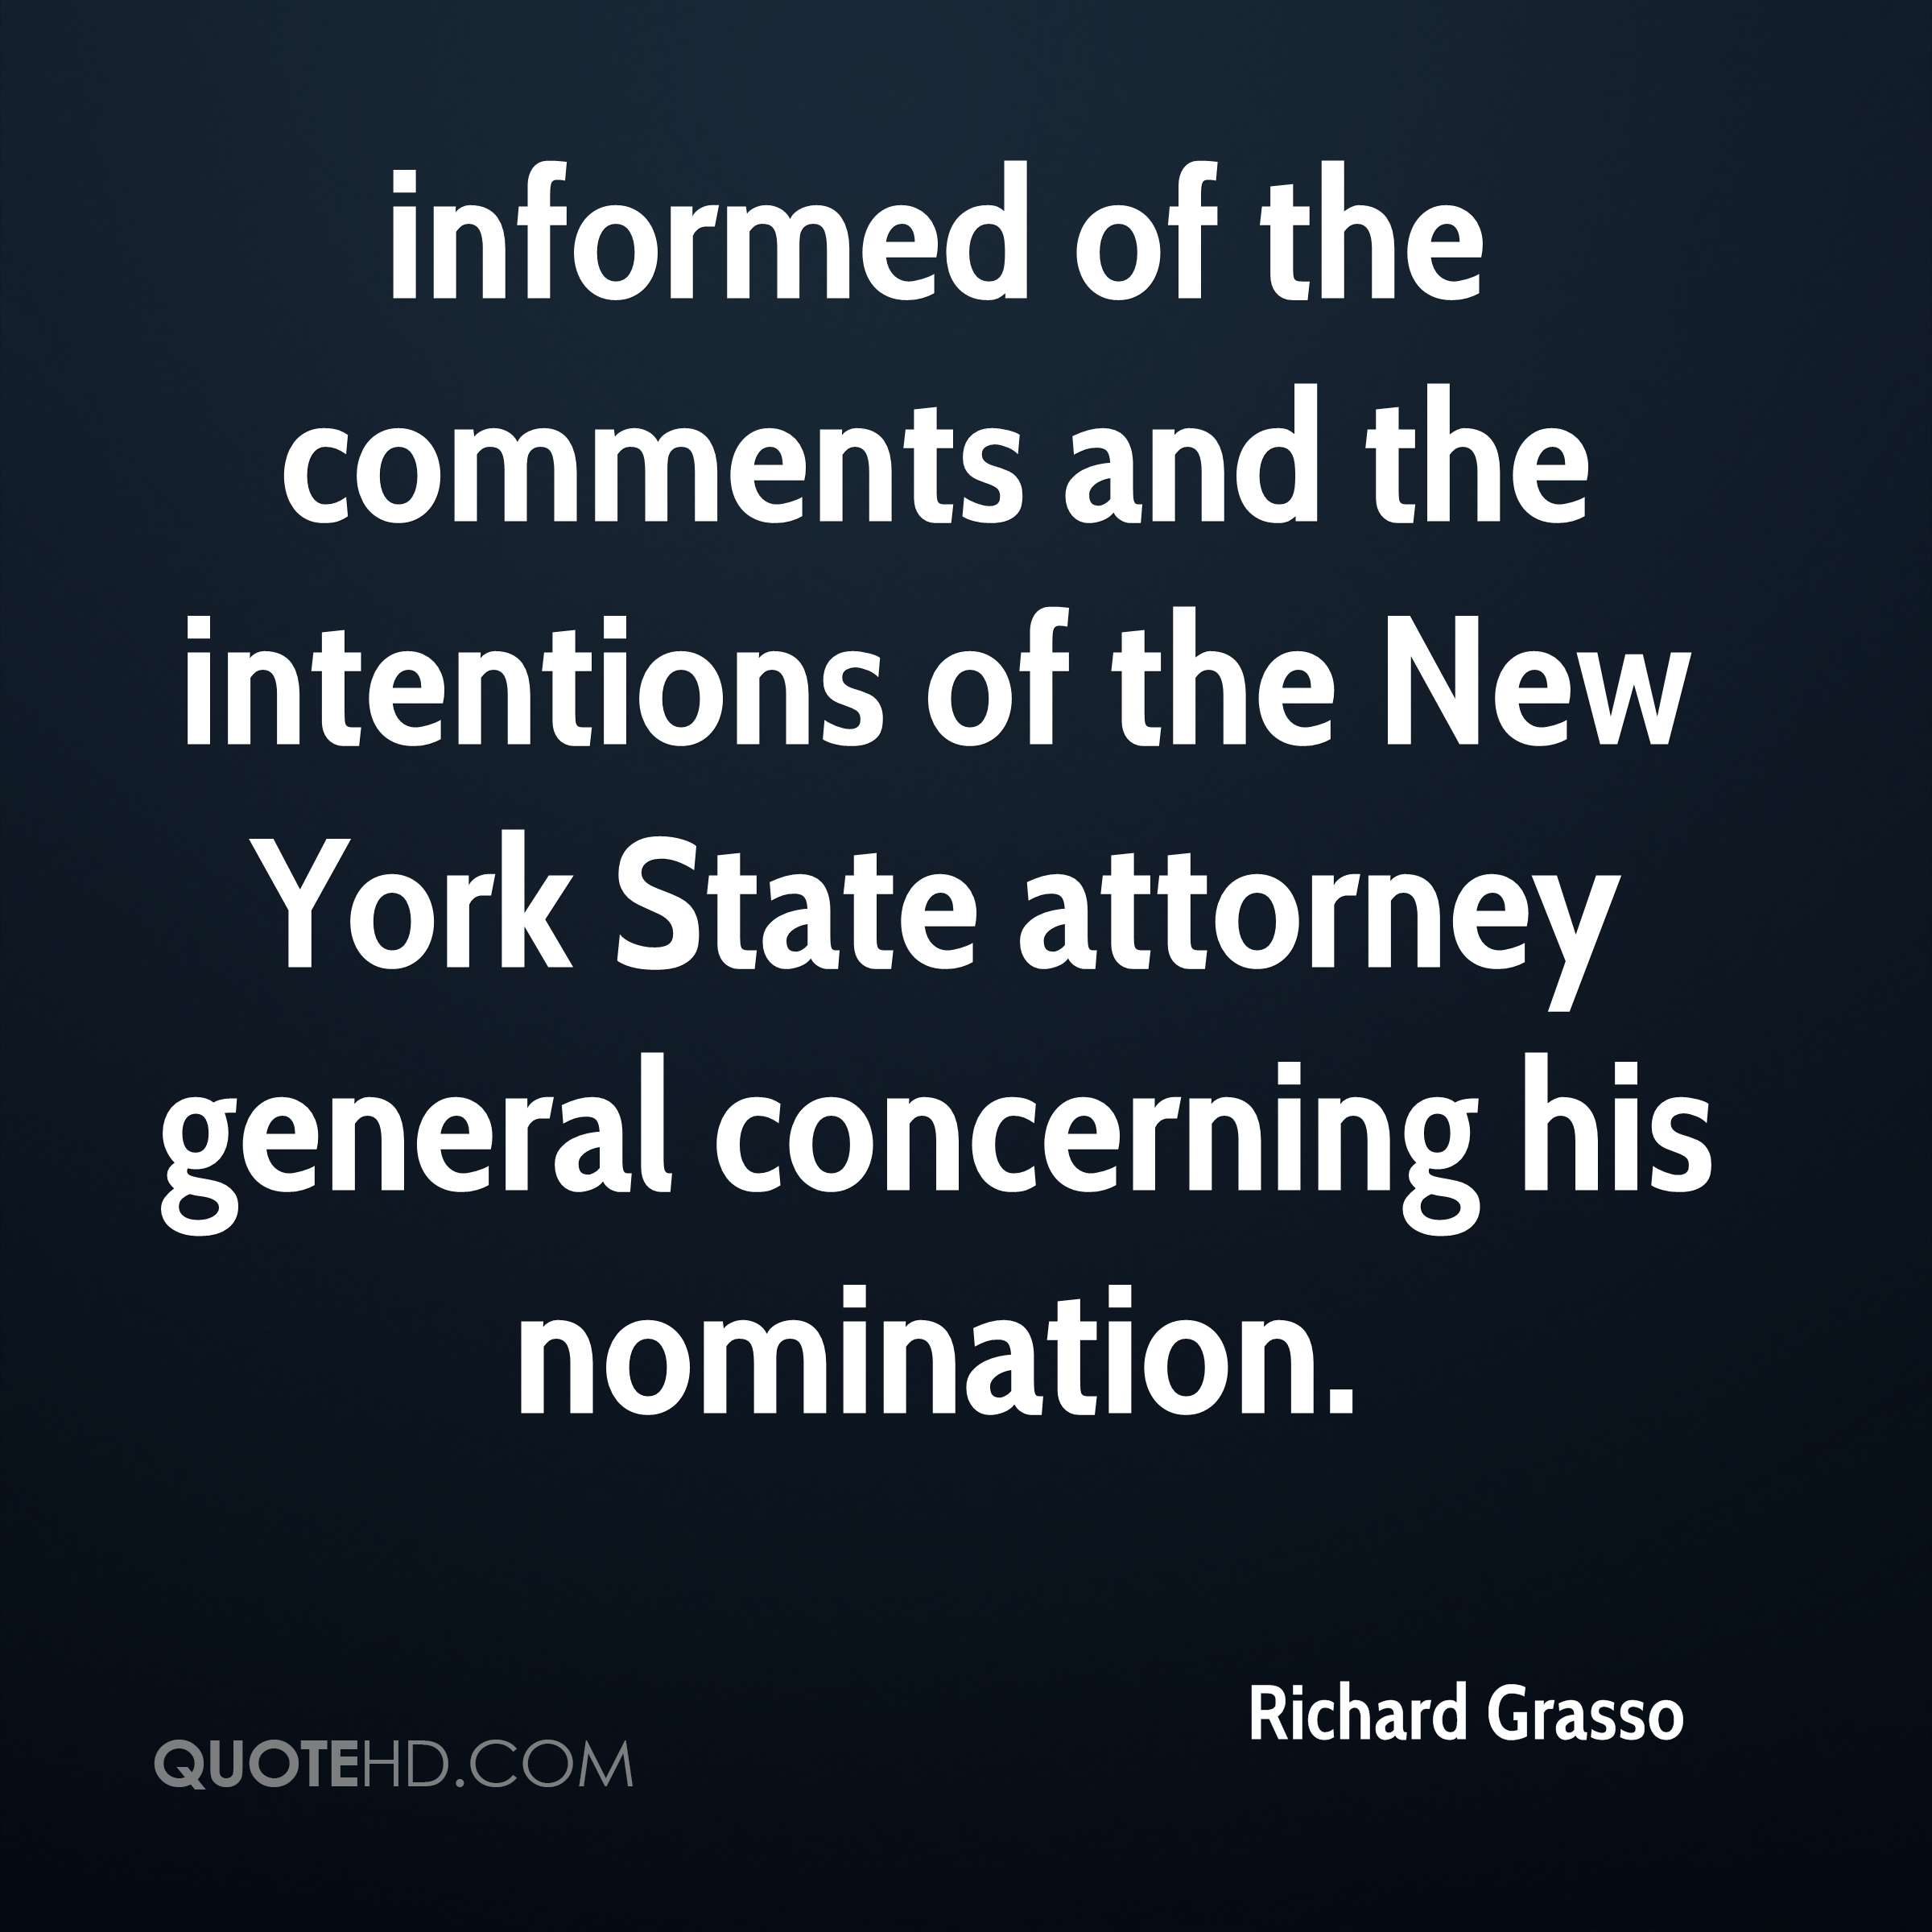 informed of the comments and the intentions of the New York State attorney general concerning his nomination.